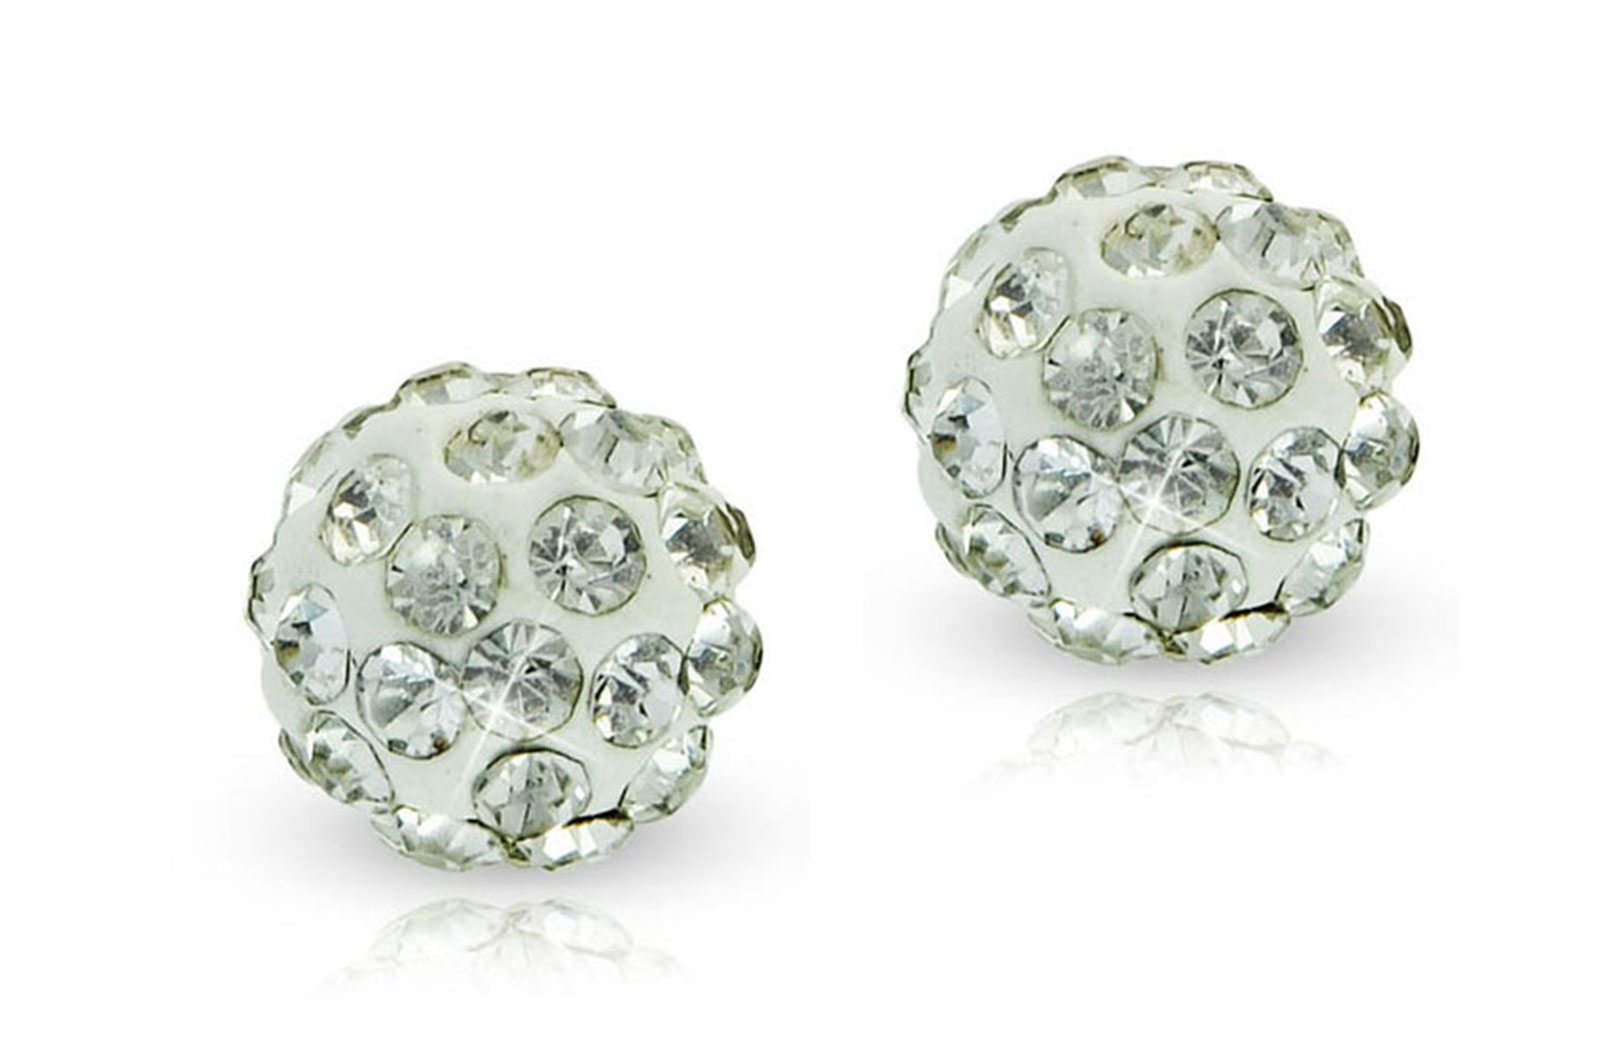 Vera Perla 18k Solid Gold 8mm Simple Crystal Ball Earrings